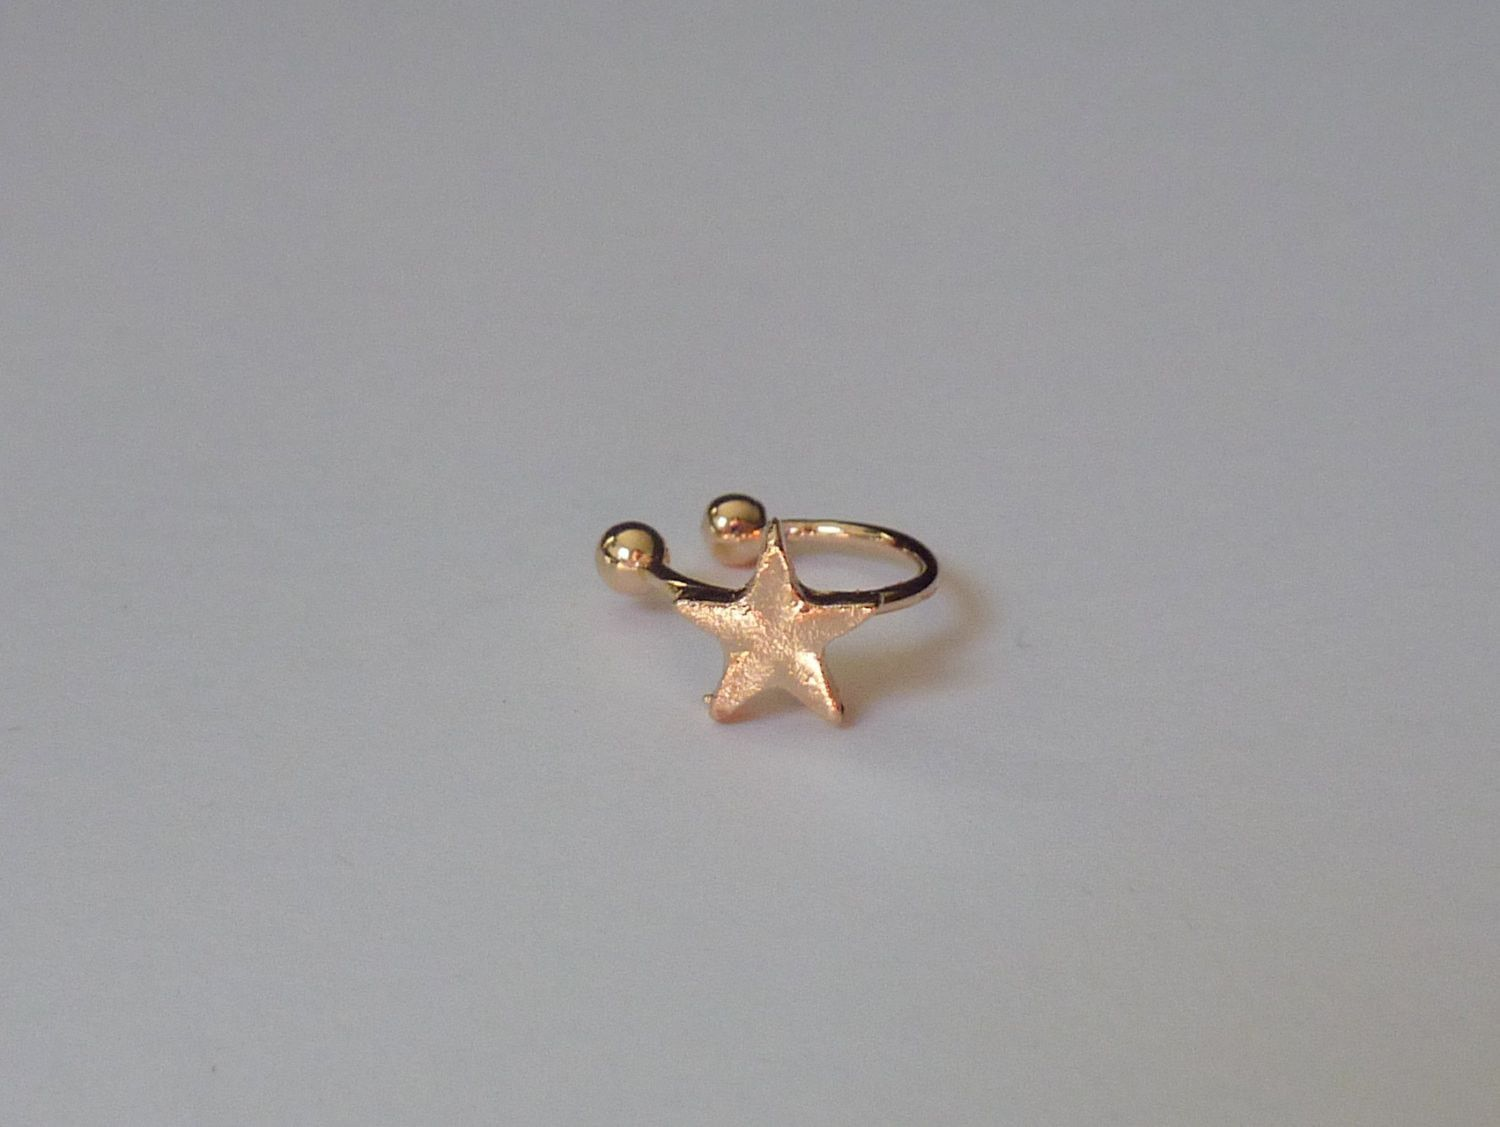 Nose accessories without piercing  No piercing gold ear cuff star ear cuff fake nose ring fake